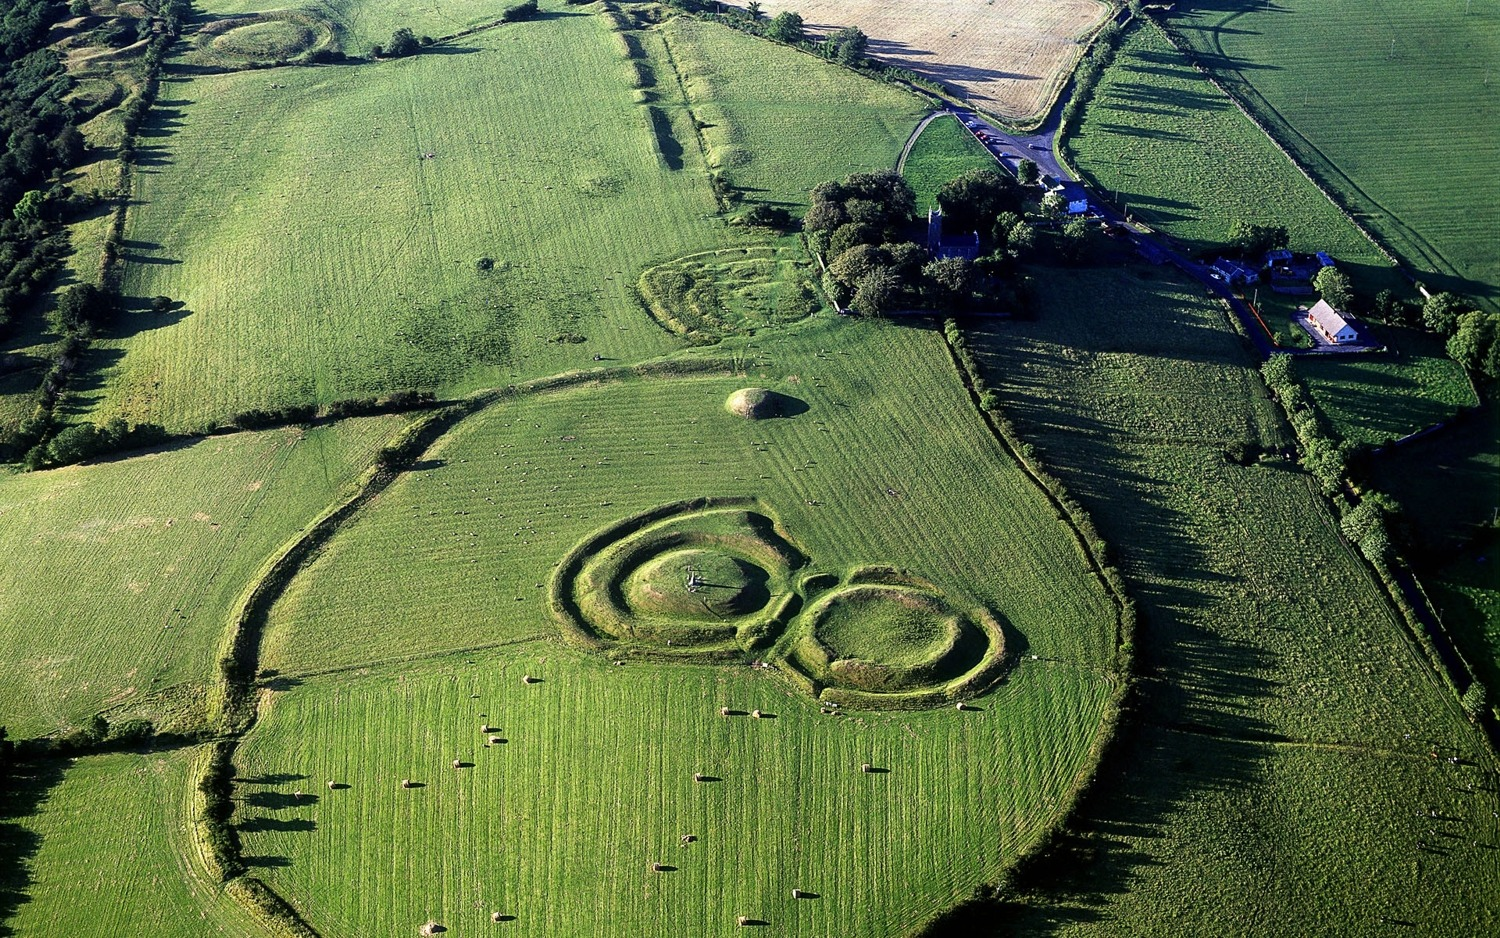 Round Earthworks at the Hill of Tara, County Meath, Leinster, Ireland